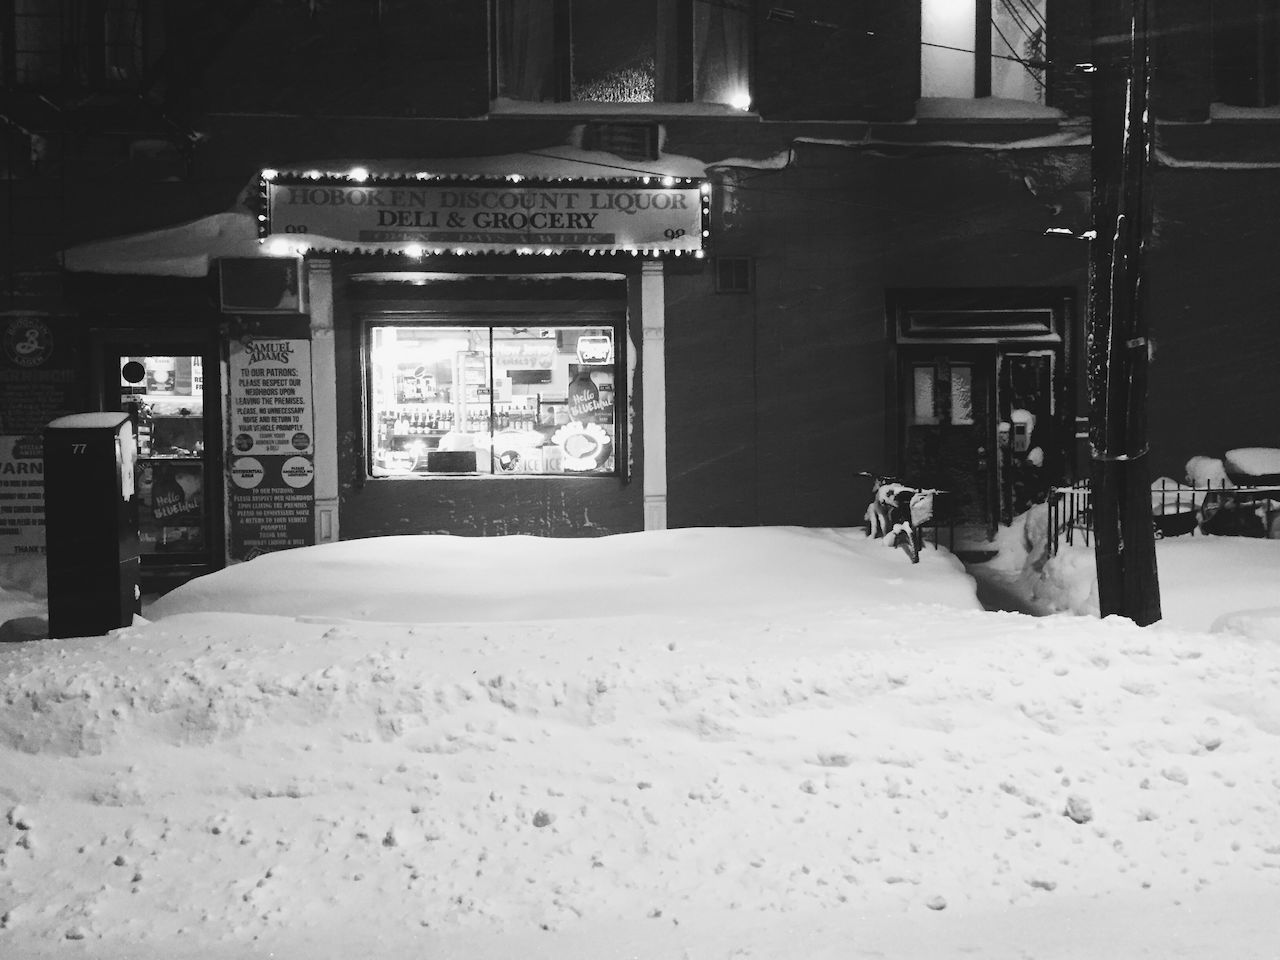 new york blizzard 2016 photo By Kevin O